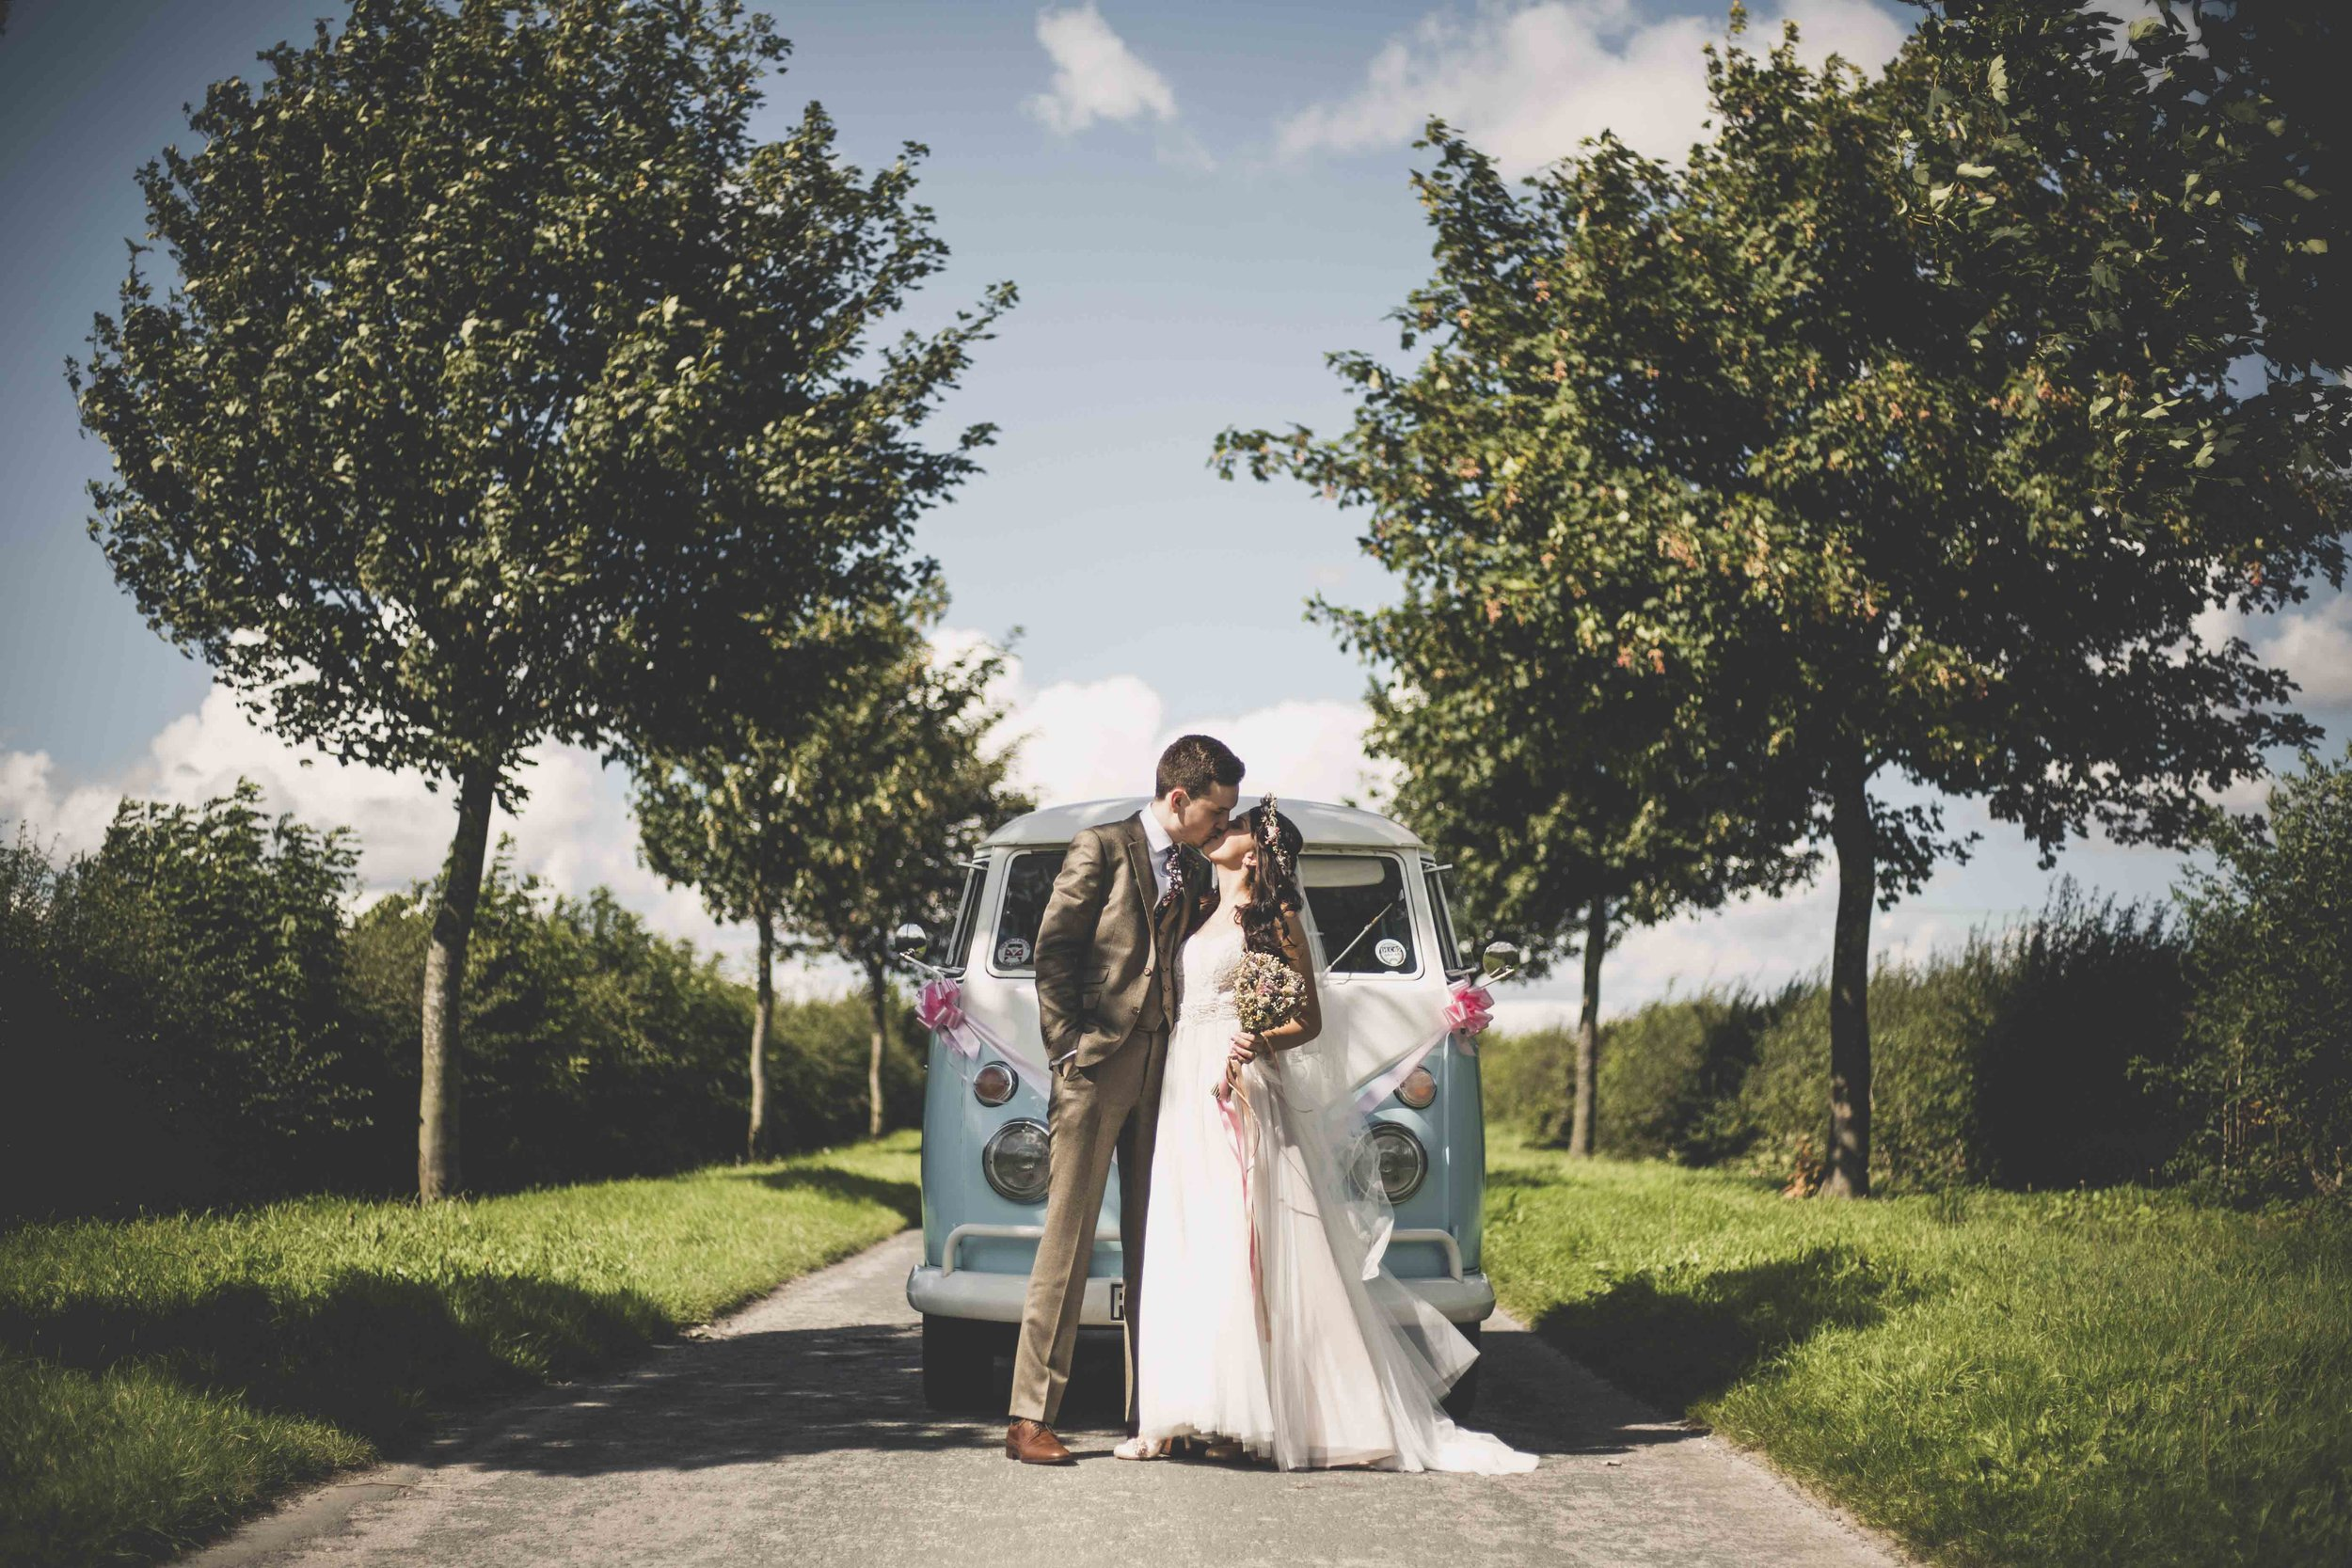 Countryside wedding photography.jpg